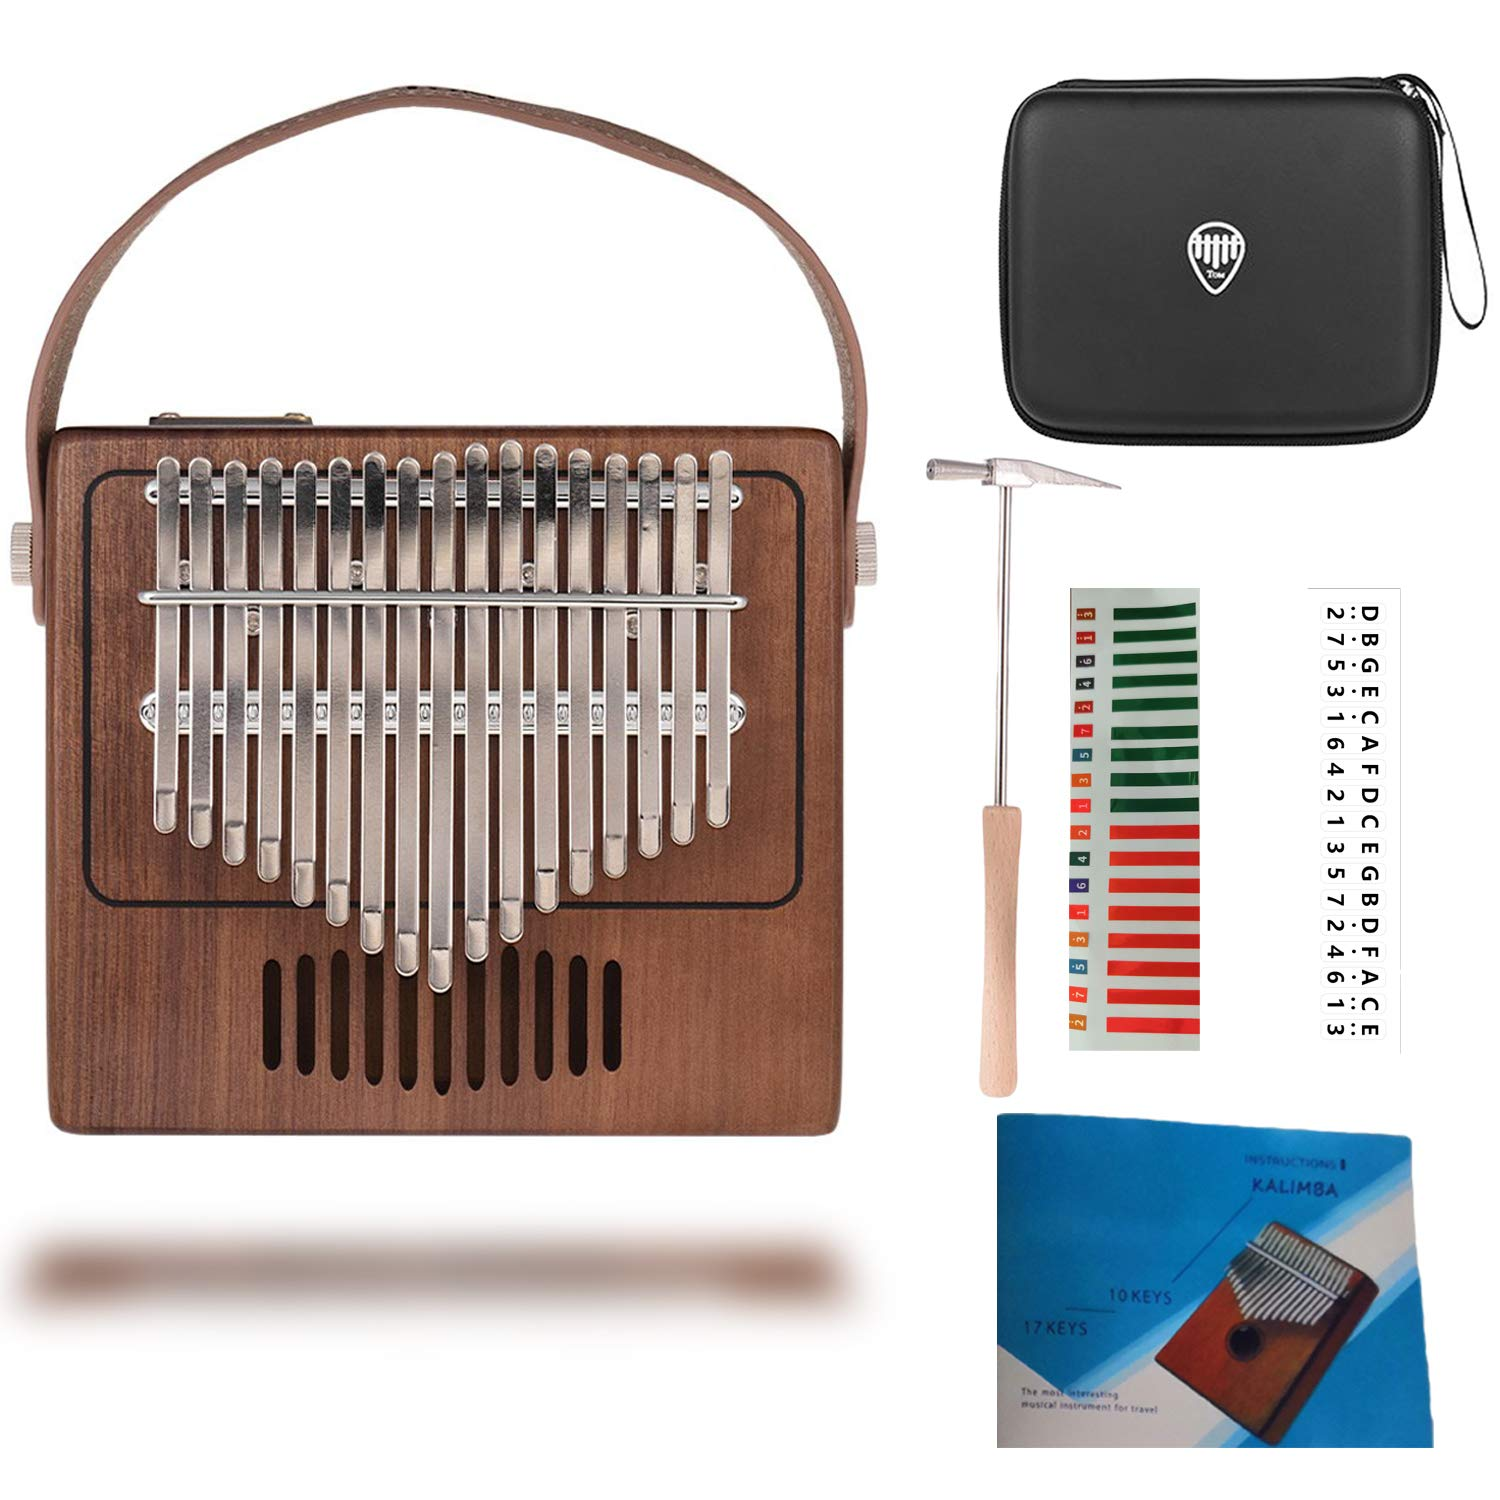 TOM Kalimba, 17 Key Thumb Piano with EVA High-performance Protective Case, Tune Hammer And Study Instruction 17 Finger Tone Mbira for Kids Adult Beginners Professionals by TOM